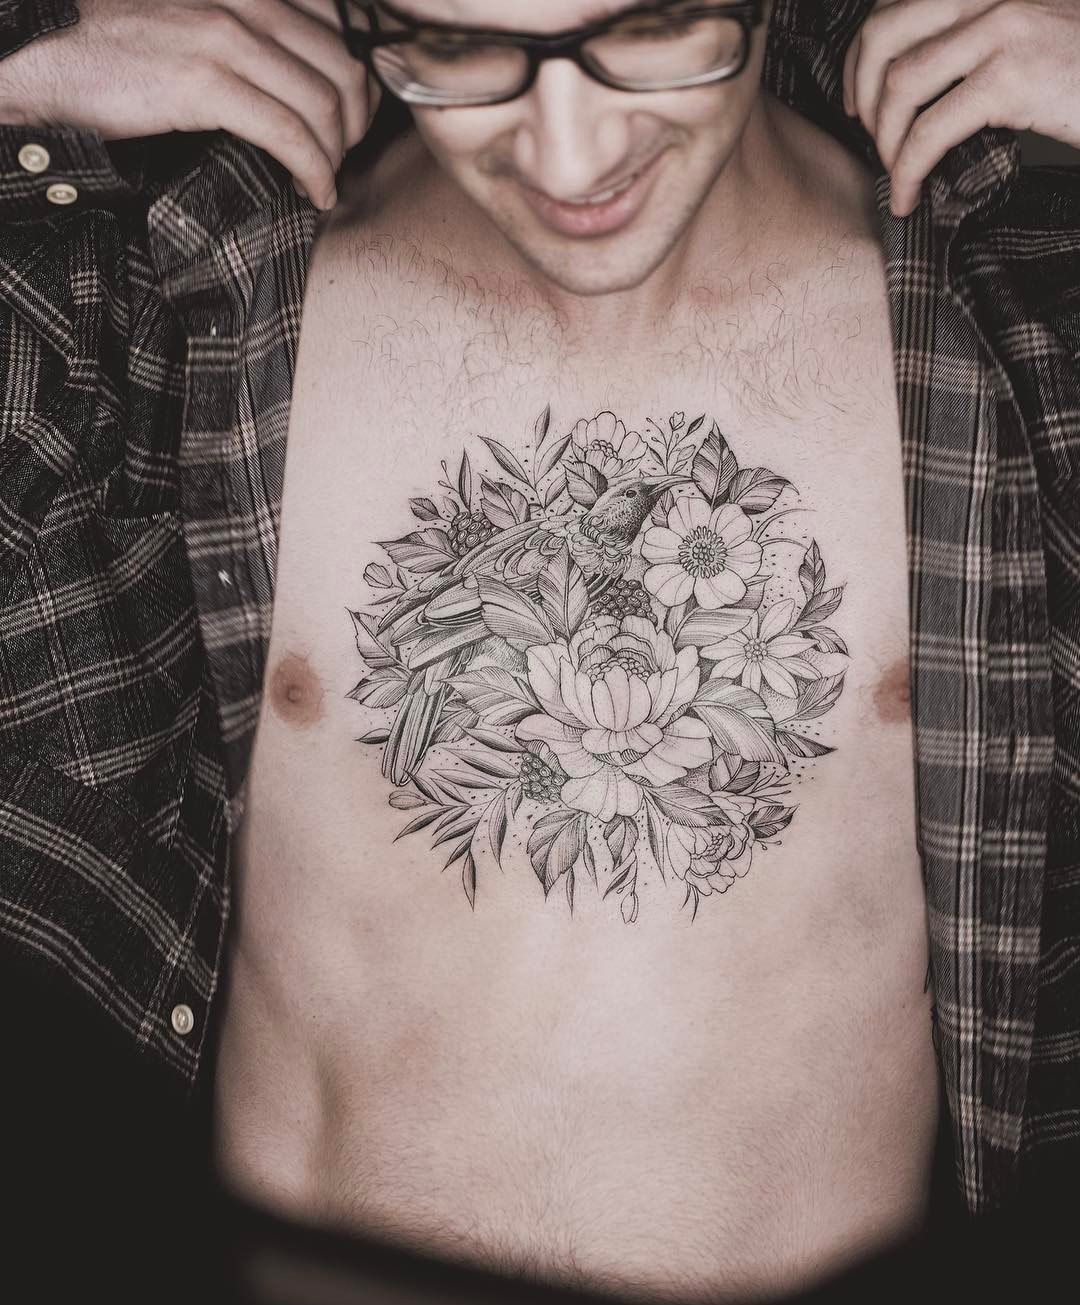 Floral Chest Tattoo Tattoos for guys, Cool chest tattoos